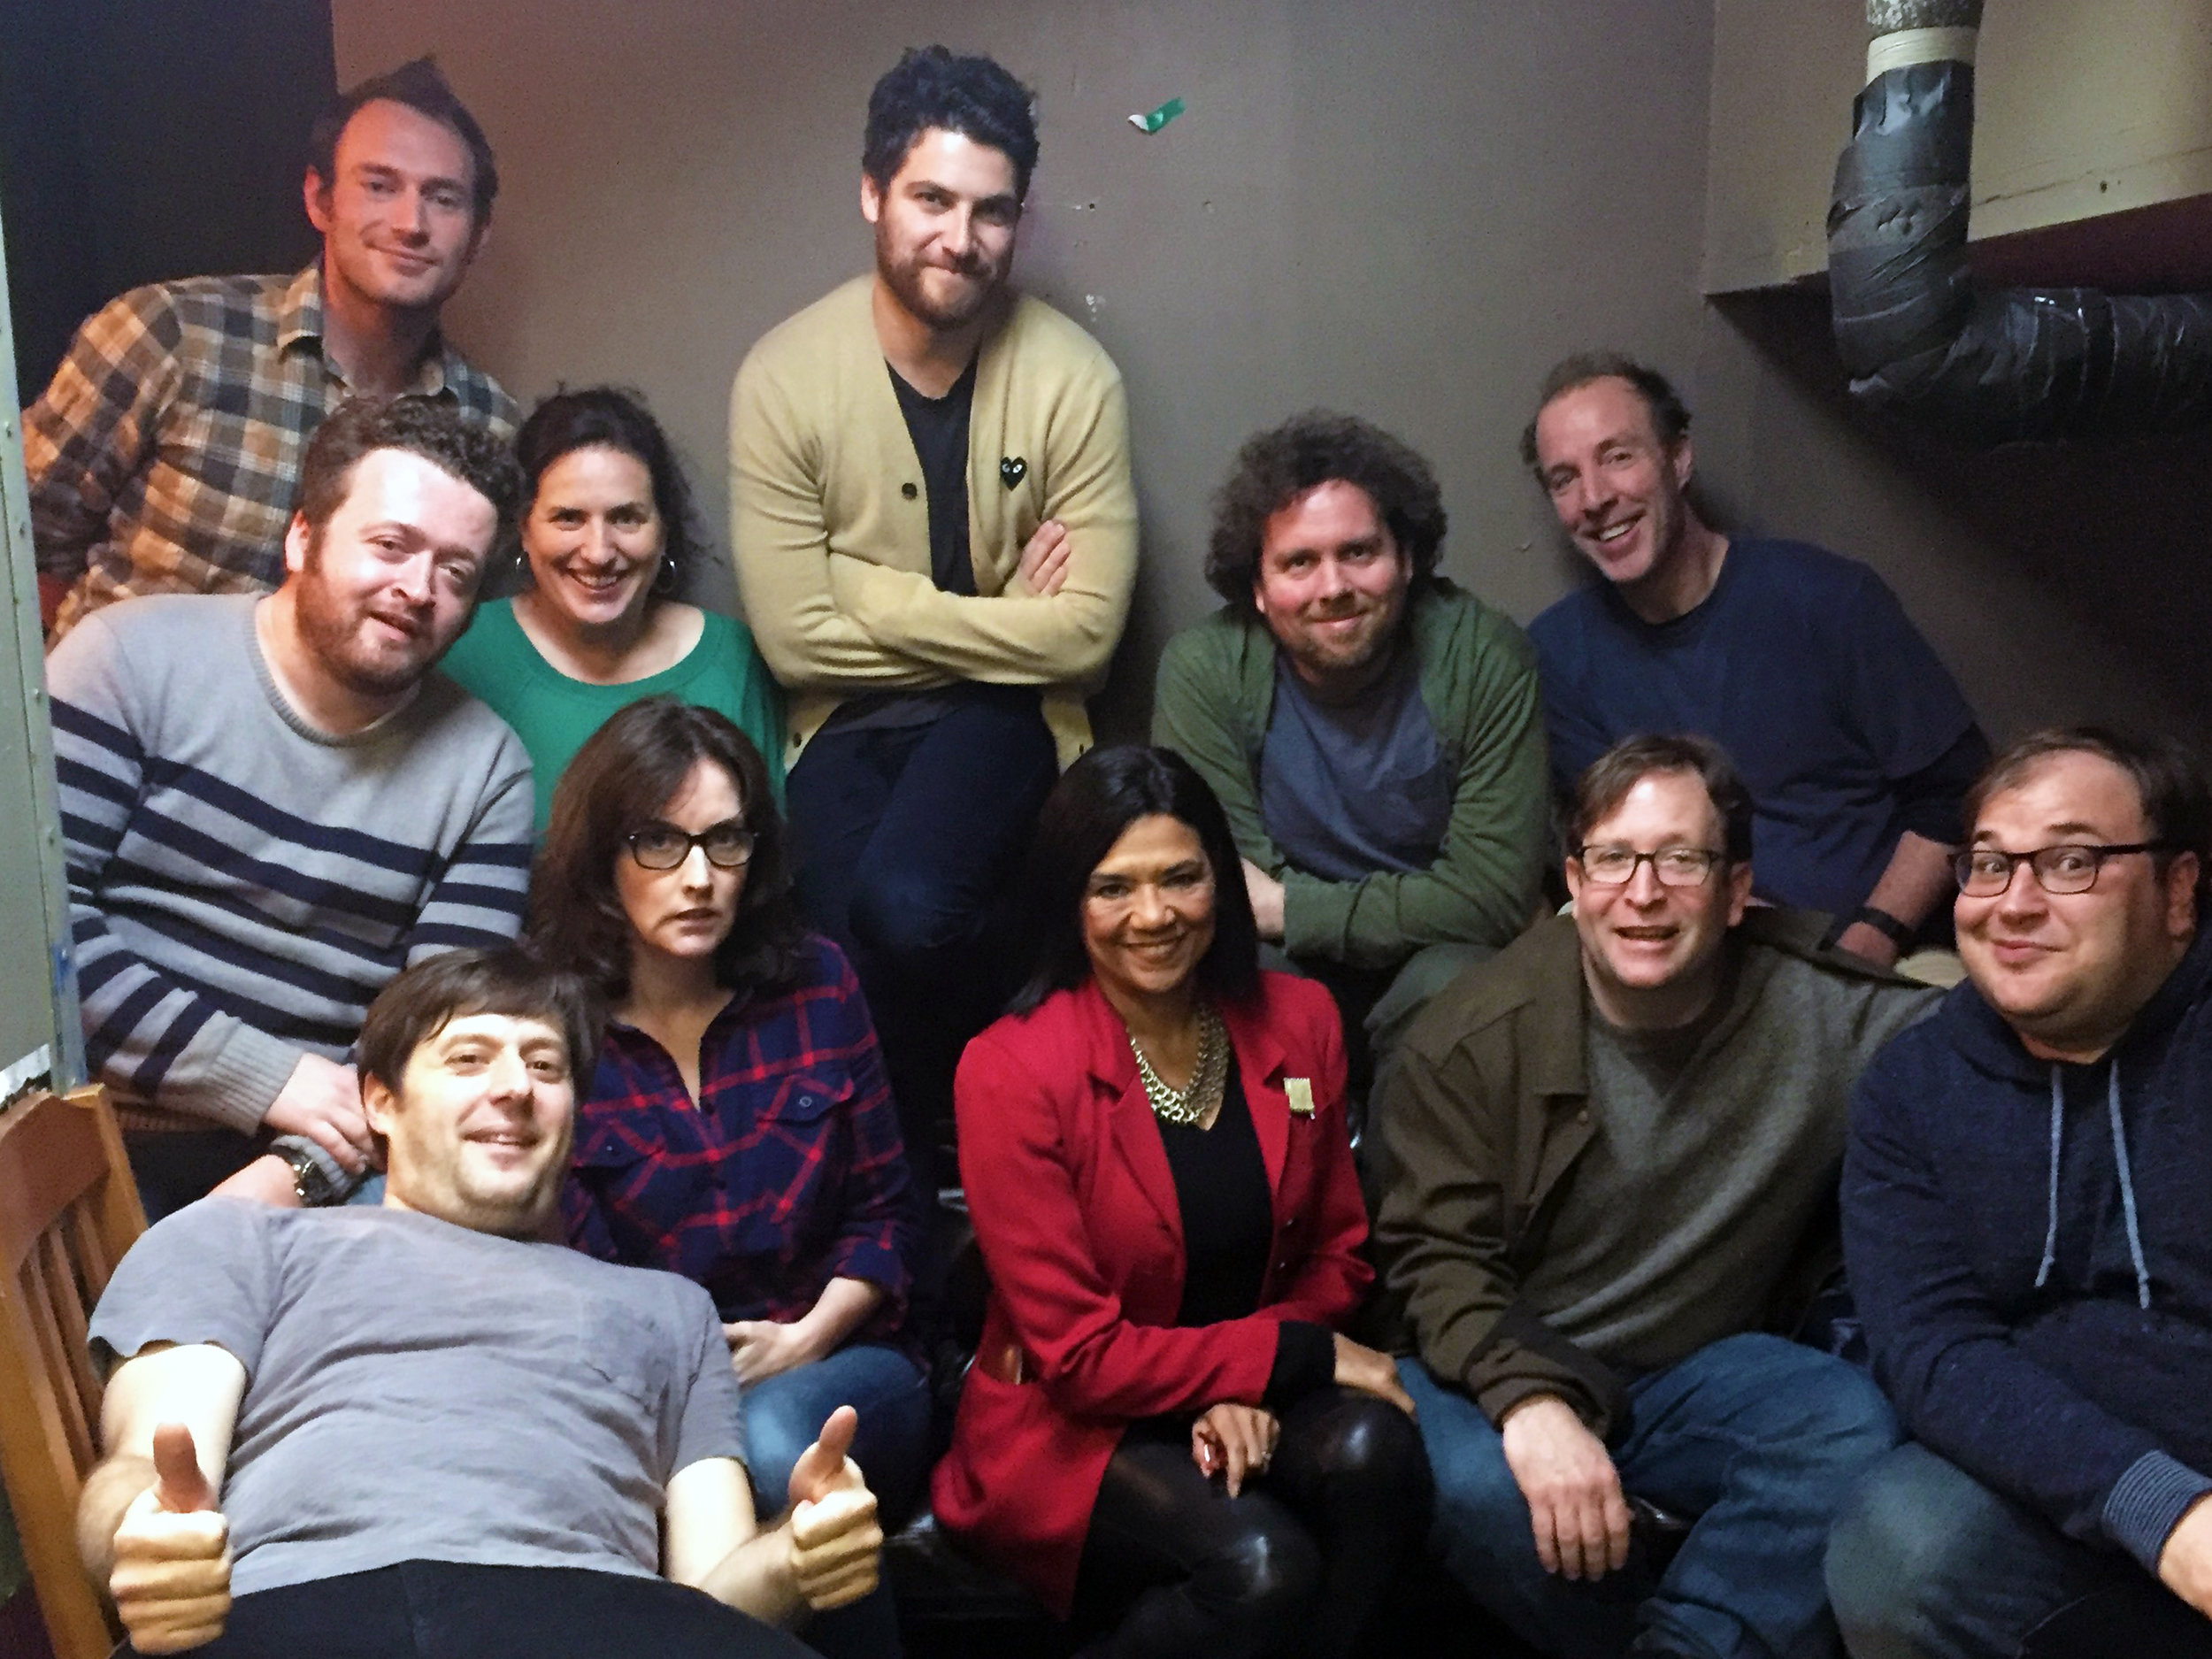 Monologists: Tom Purcell, Sonia Manzano